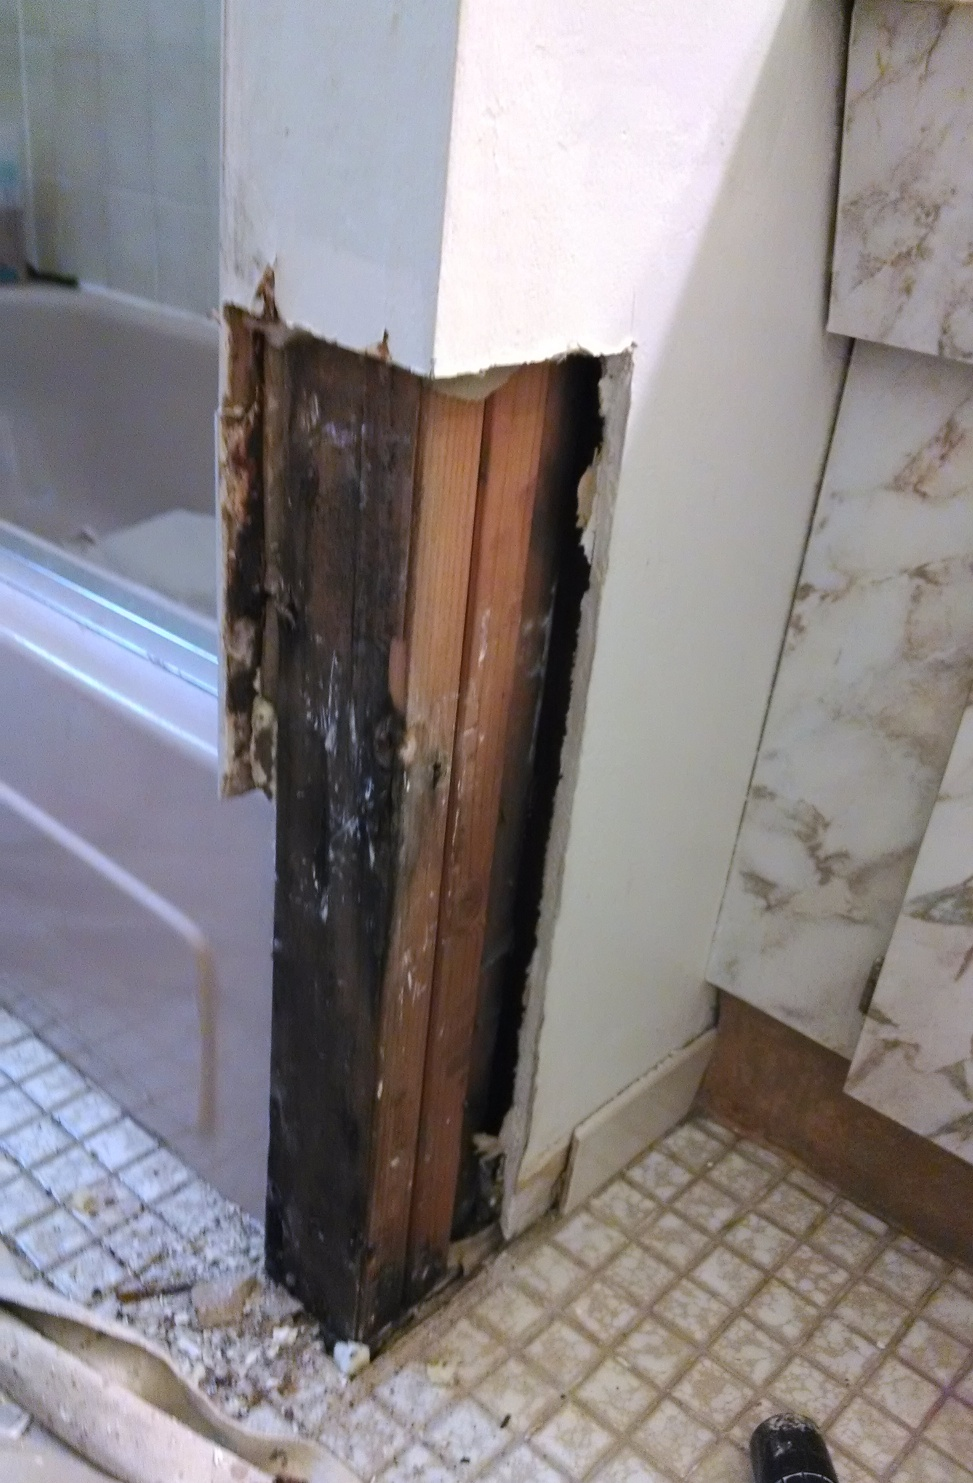 How to keep mold out of bathroom - Bathroom Wall